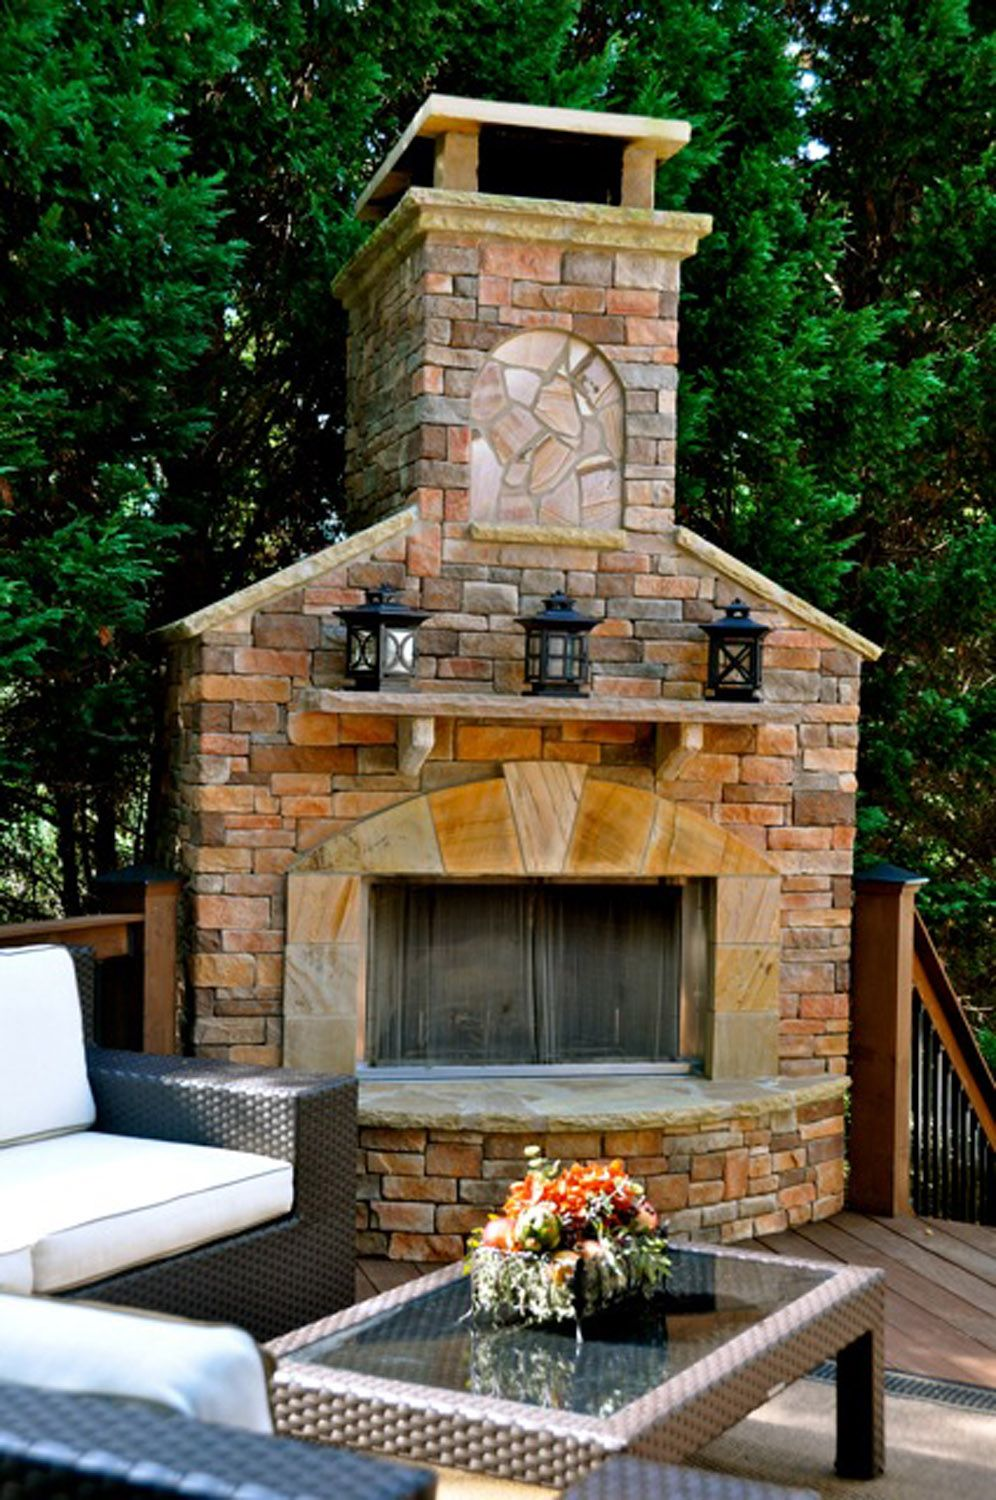 Accessories, : Extraordinary Outdoor Living Room Decoration Using Cream Outdoor  Stone Fireplace Along With Black - Accessories, : Extraordinary Outdoor Living Room Decoration Using